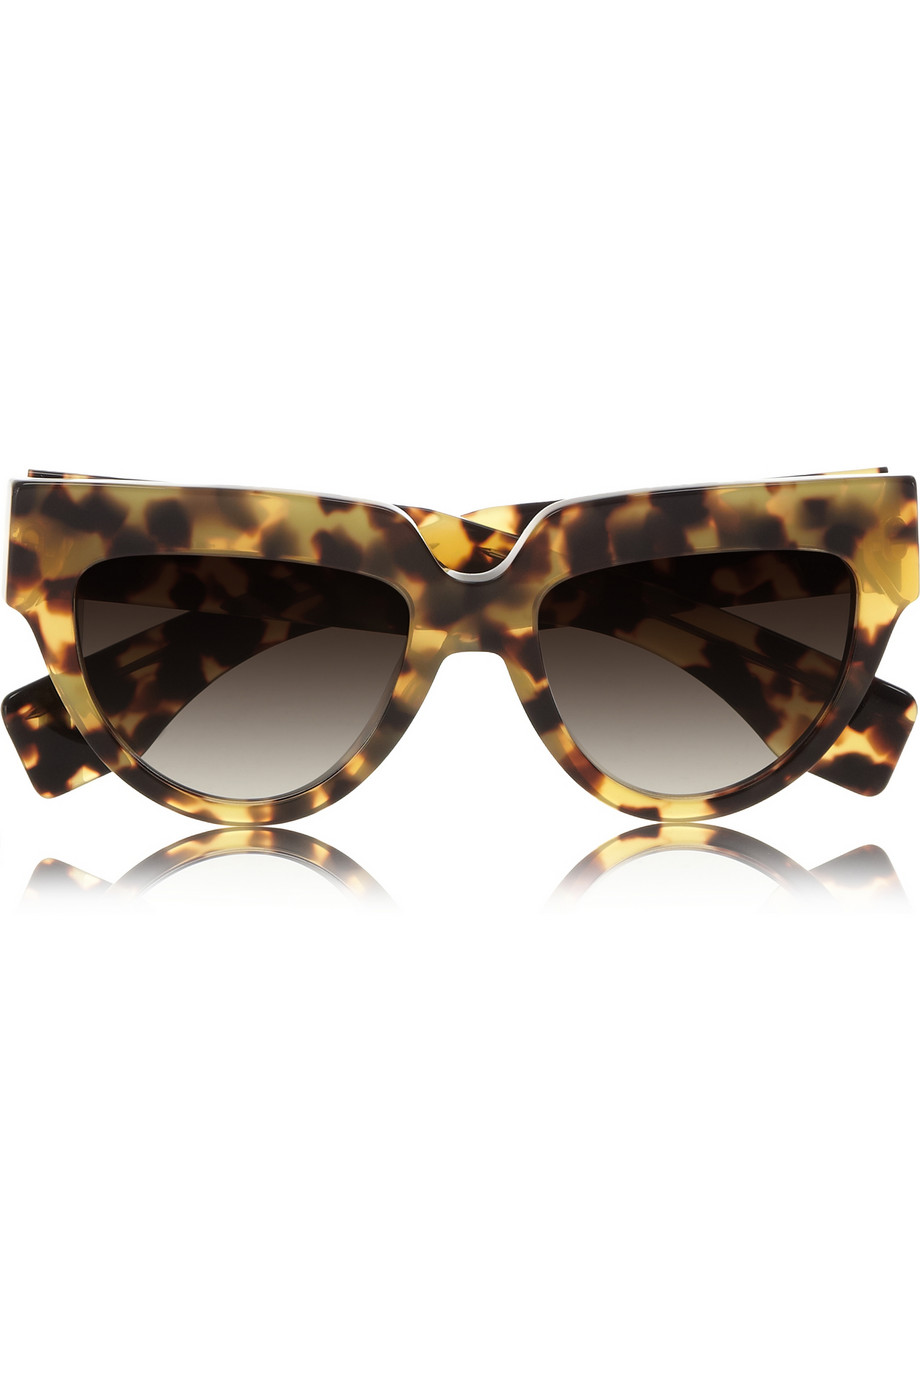 Prada Cat Eye Glasses Sunglasses